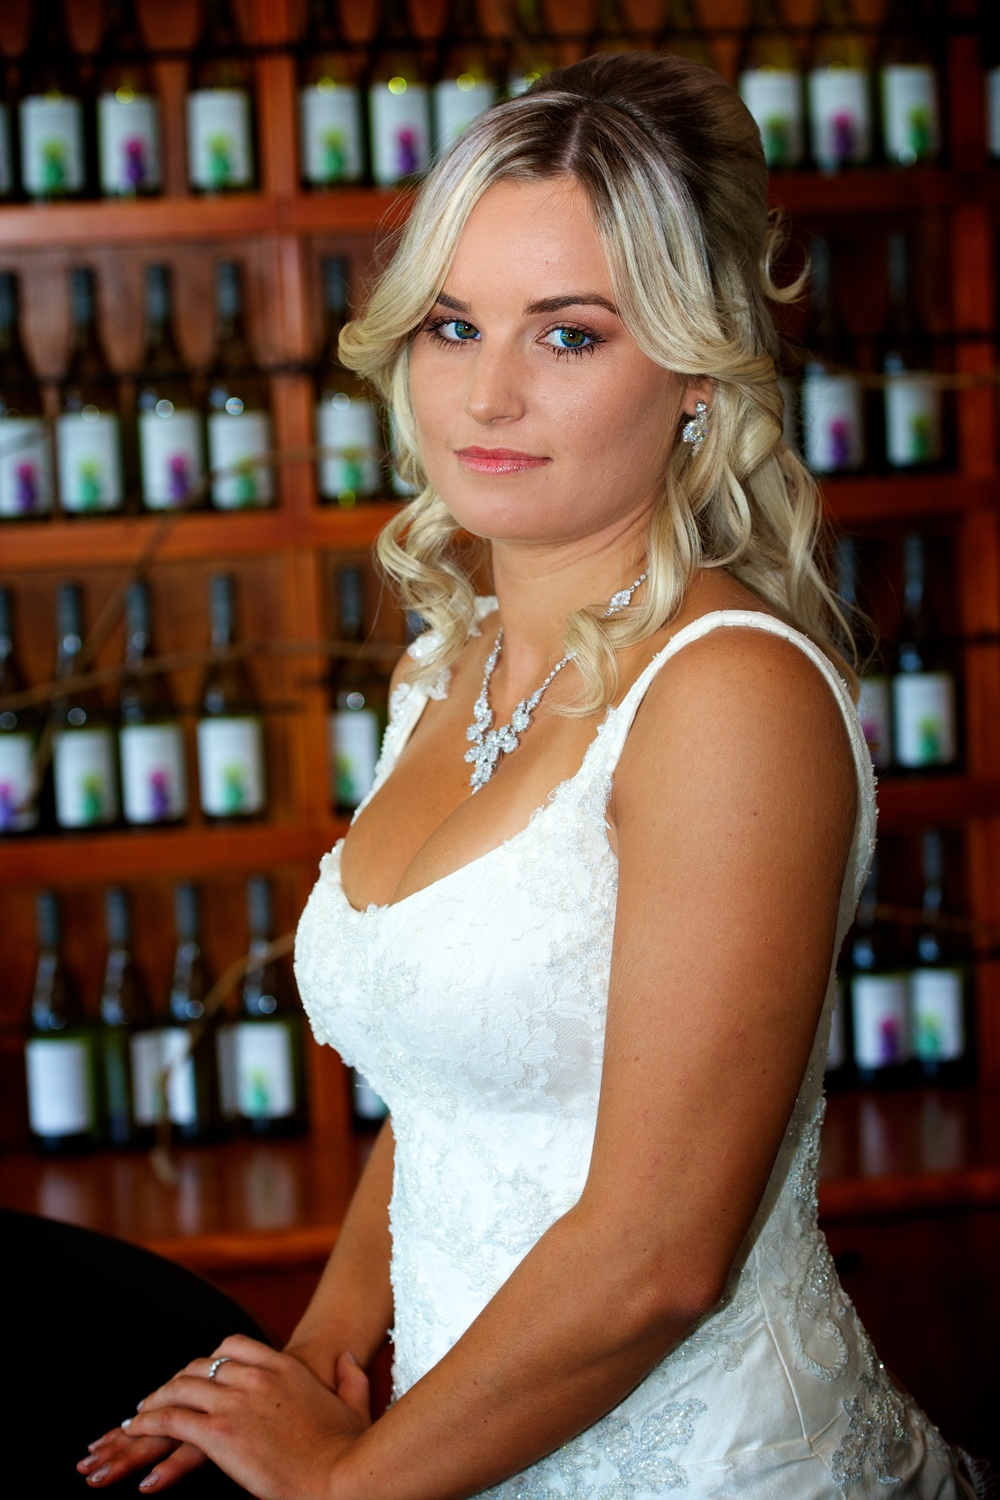 A stunning bridal image of a bride at Mulberry on Swan, Swan Valley